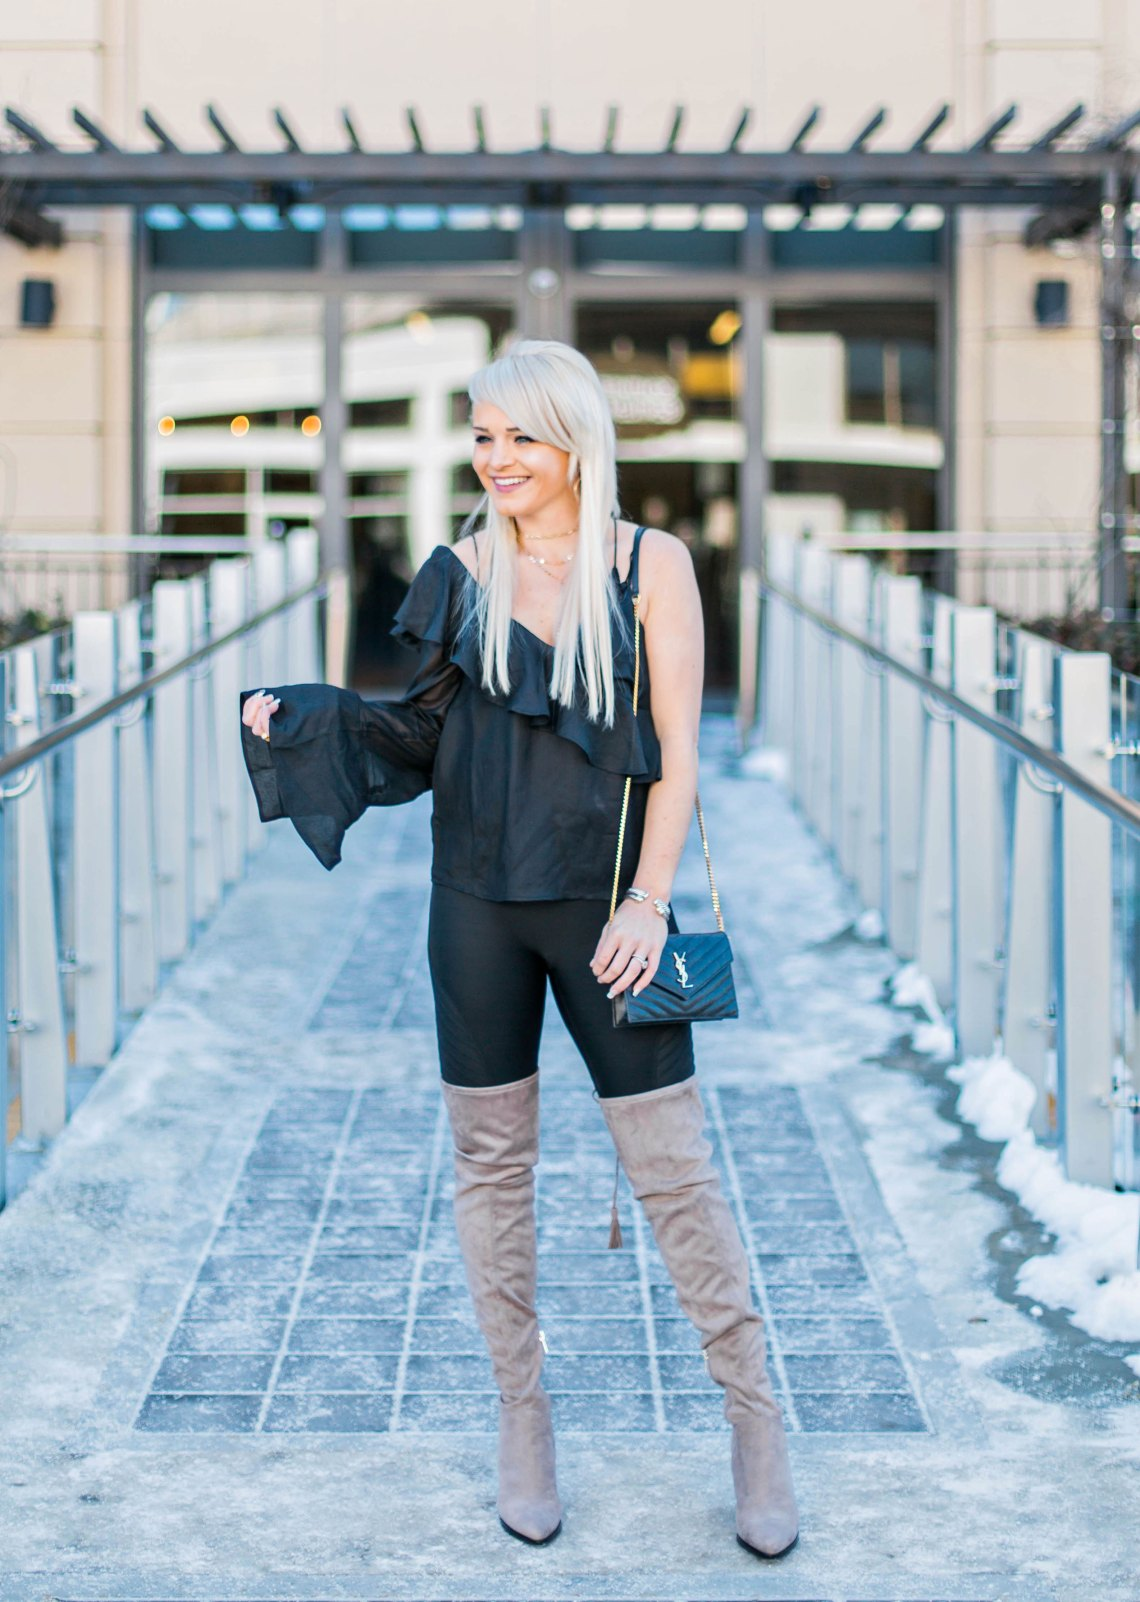 one-shoulder-top-for-27-nordstrom-ruffles-winter-style-boots-marc-fisher-urban-blonde-winter-fashion